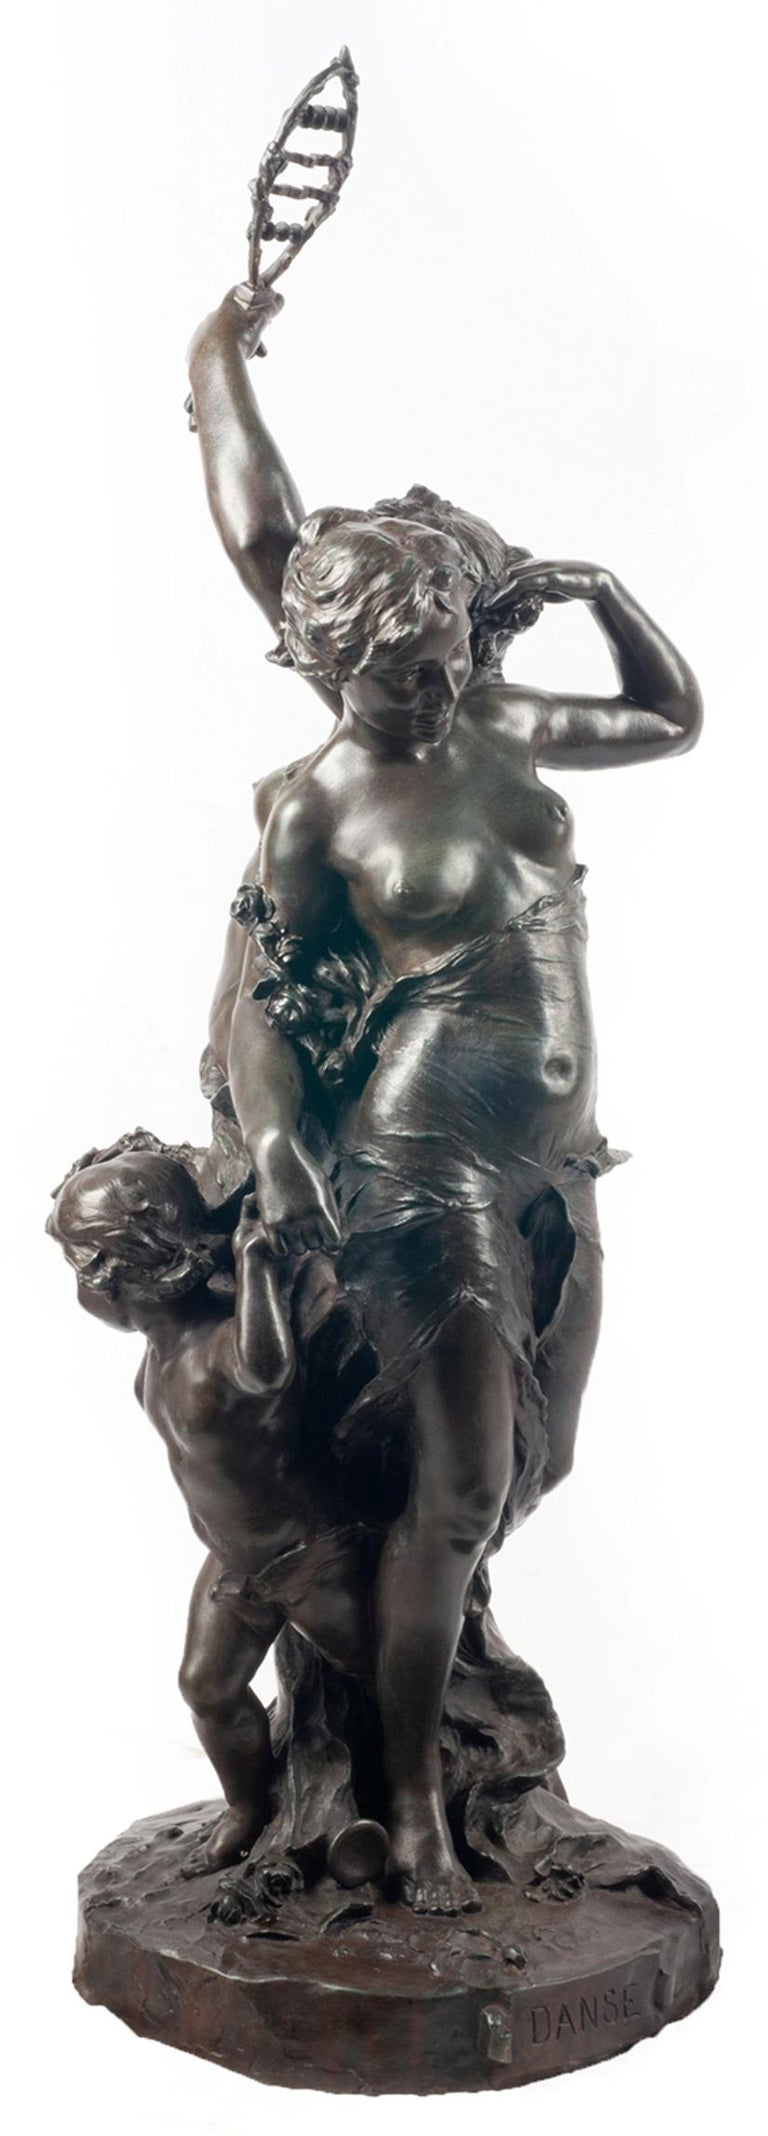 Classical C19th Bronze statue, depicting Music and Dance,  JEAN-BAPTISTE GERMAIN For Sale 15